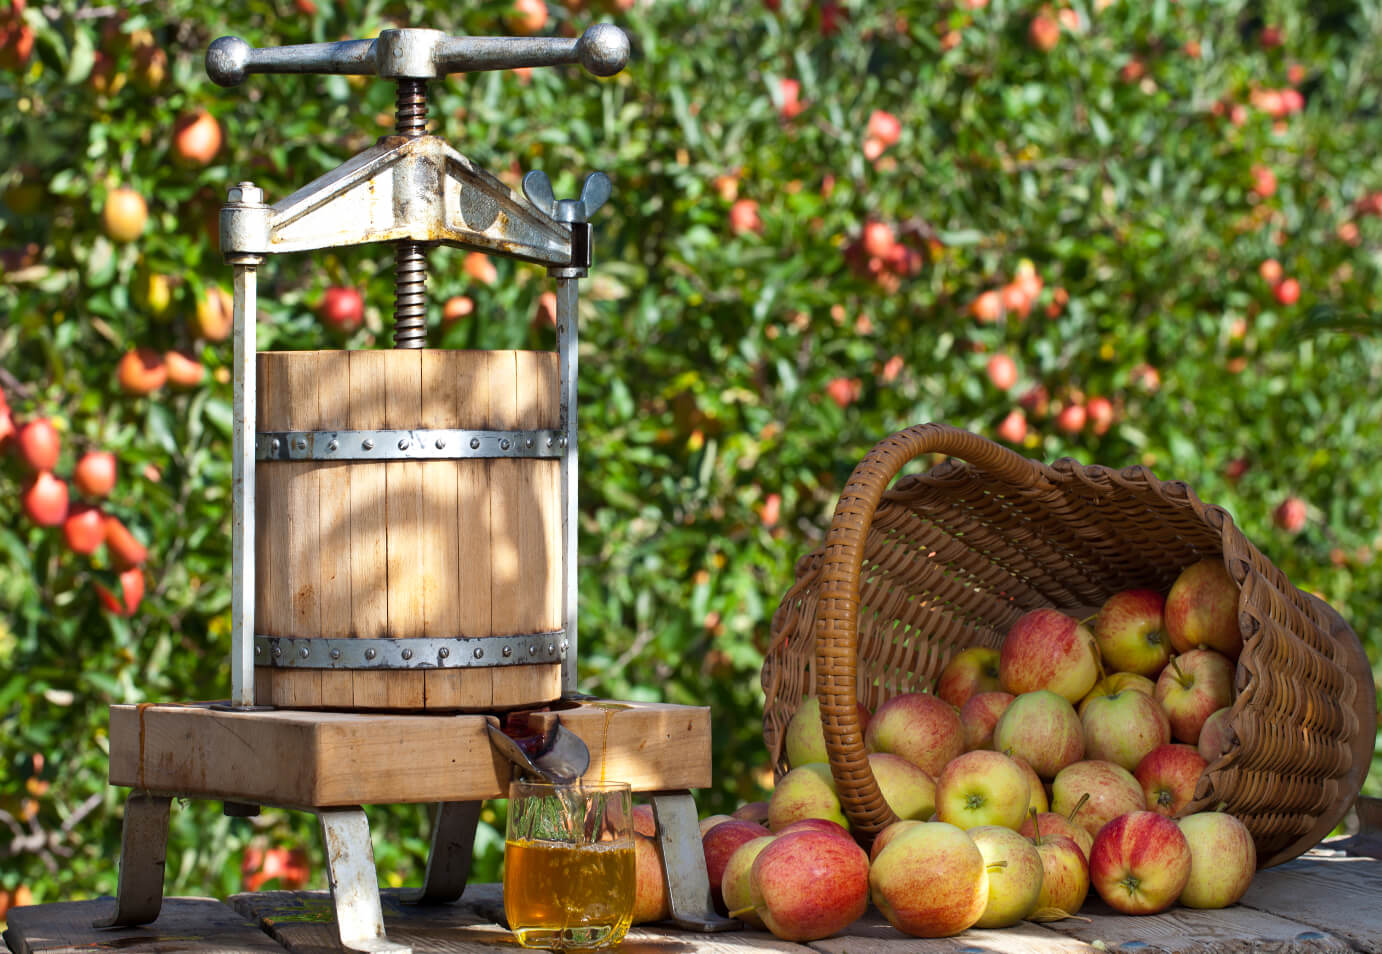 cider-apples-shutterstock_65553892-1